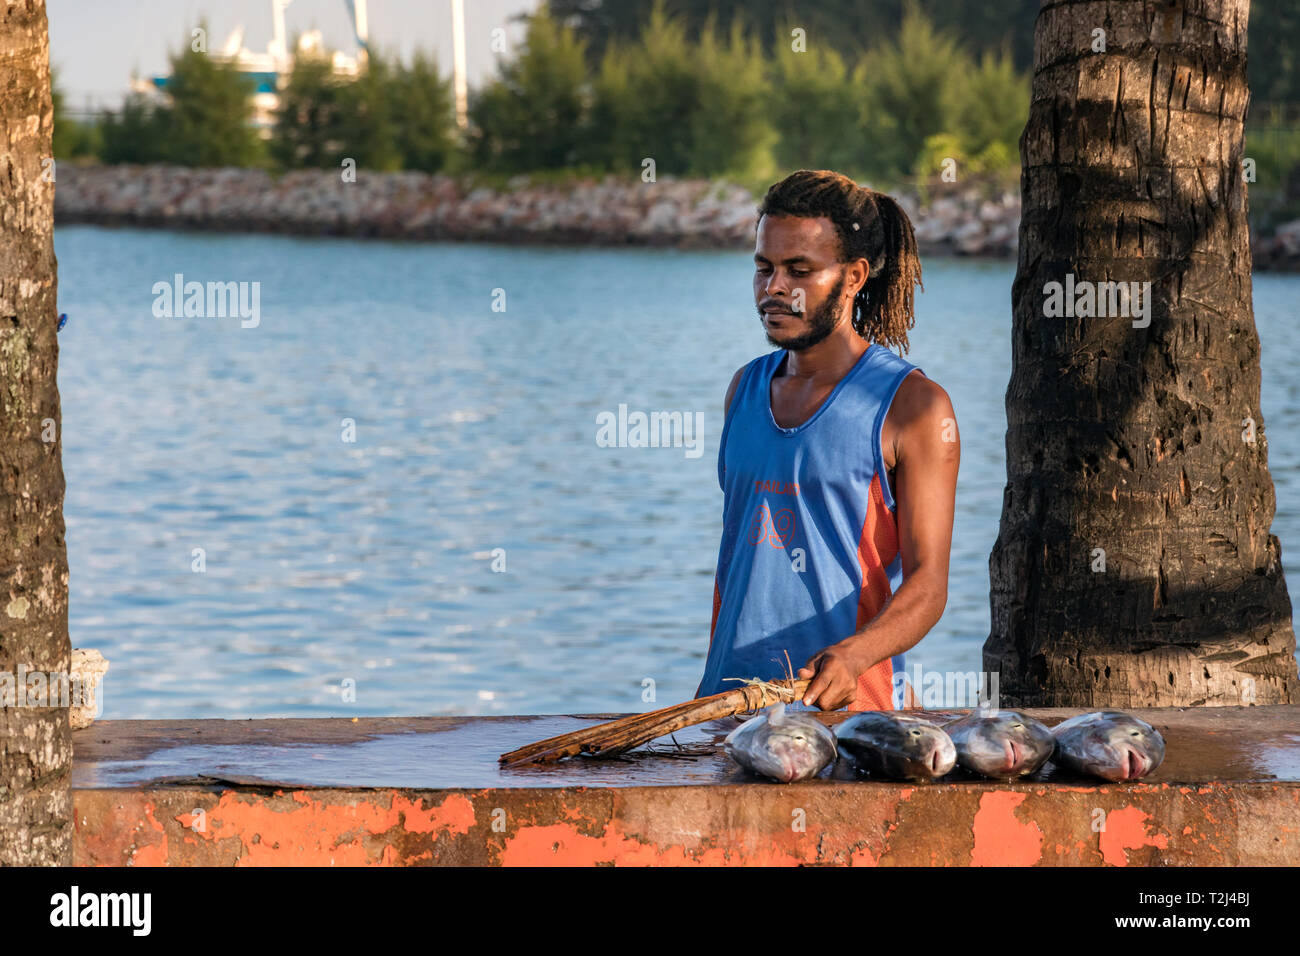 Praslin, Seychelles - February 5th, 2019: Portrait of a local fisherman selling fresh fish on a table next to the sea in Praslin, Seychelles. - Stock Image